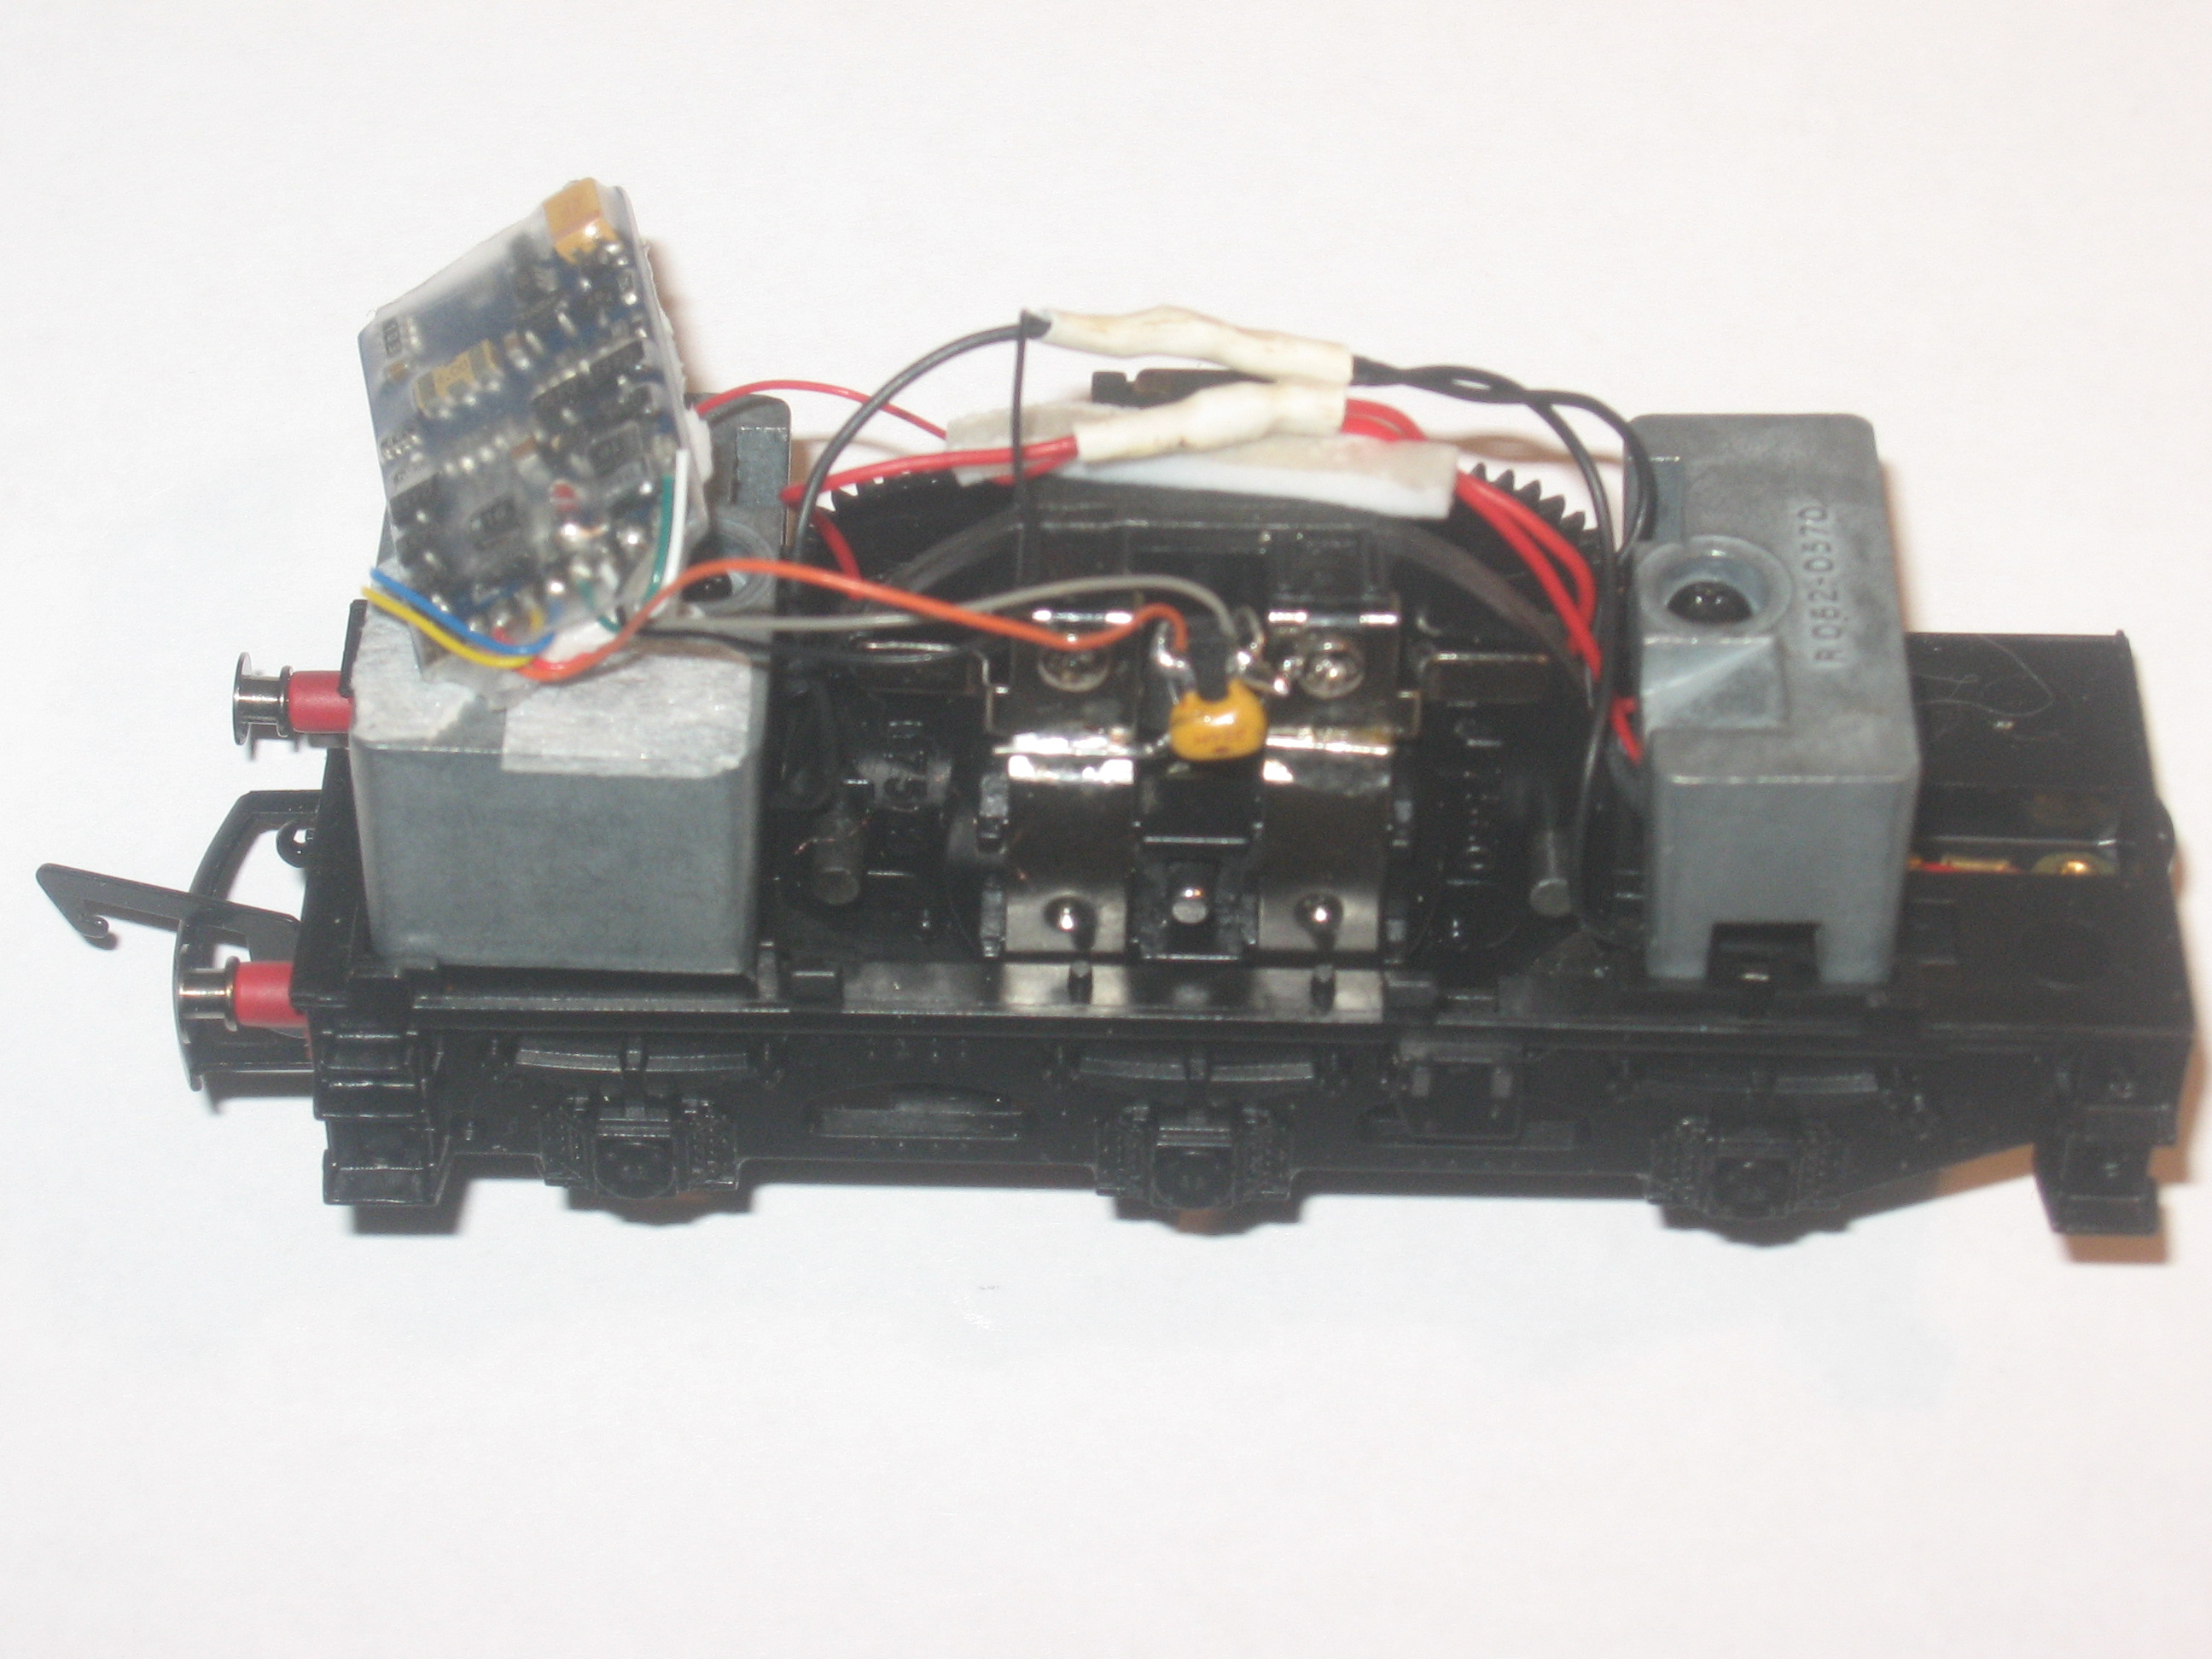 The 'Newer' Ringfiled motor fitted witha Bachmann decoder